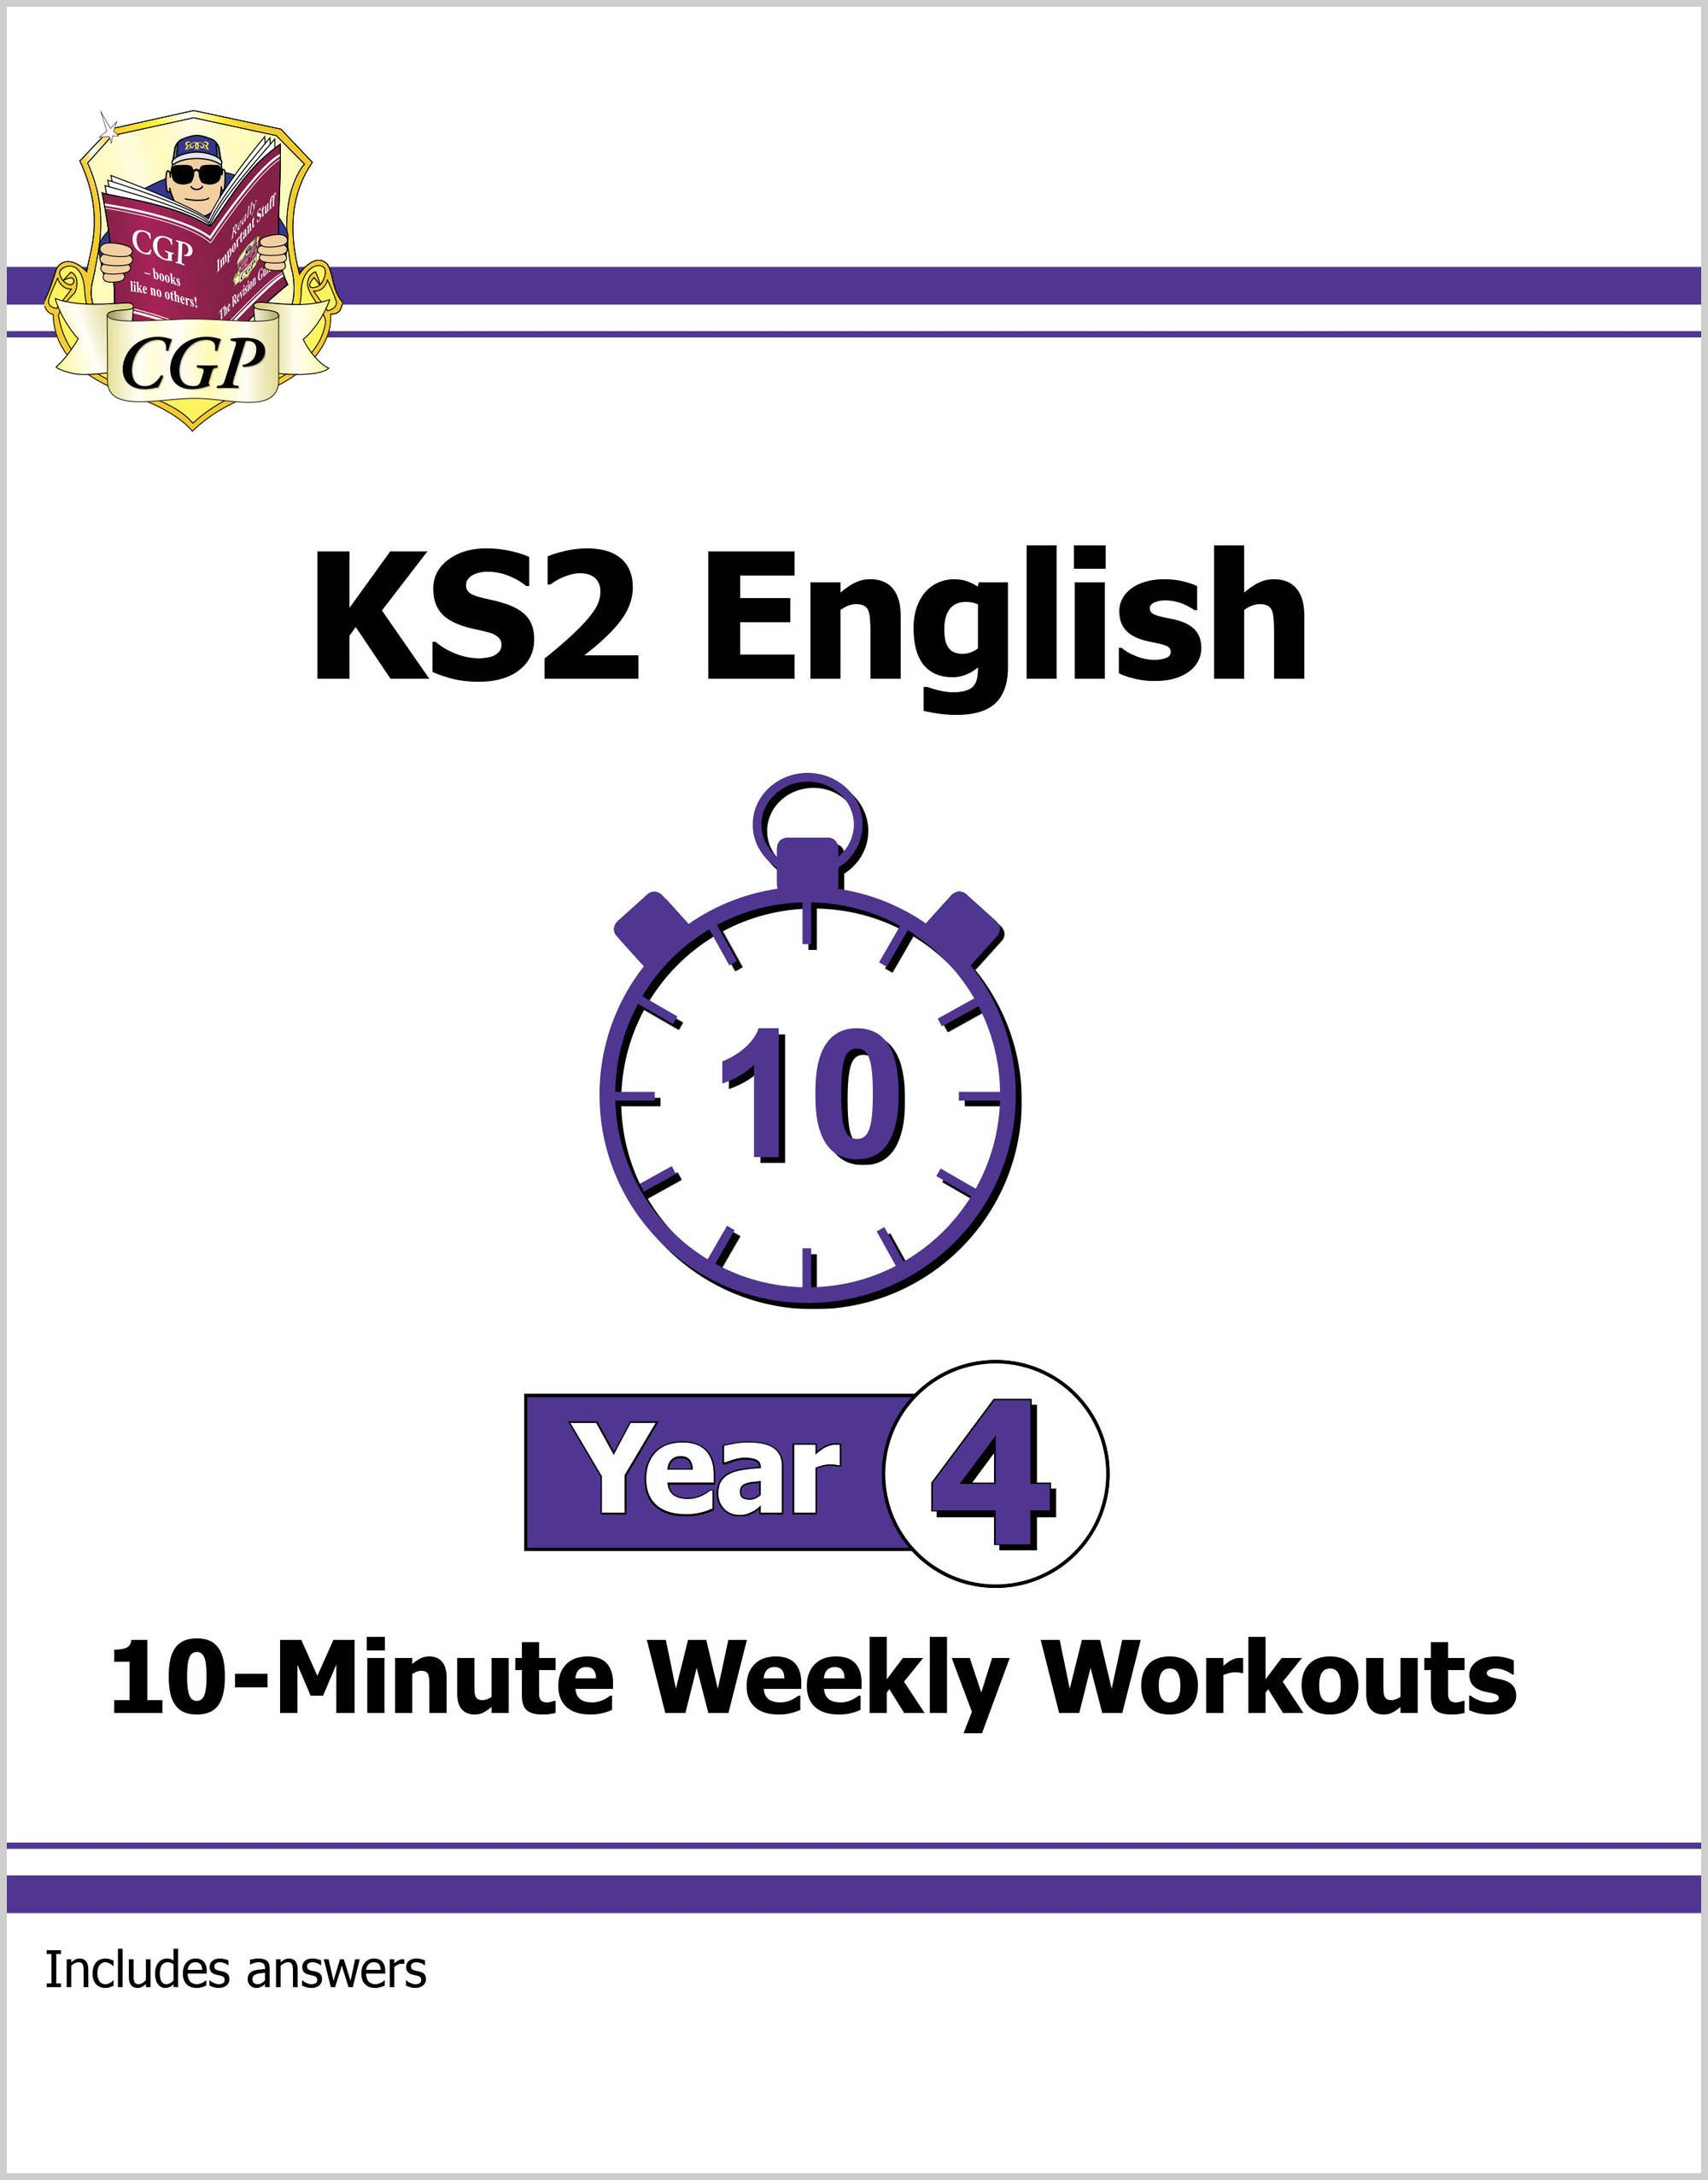 E4XW21DK - New KS2 English 10-Minute Weekly Workouts - Year 4